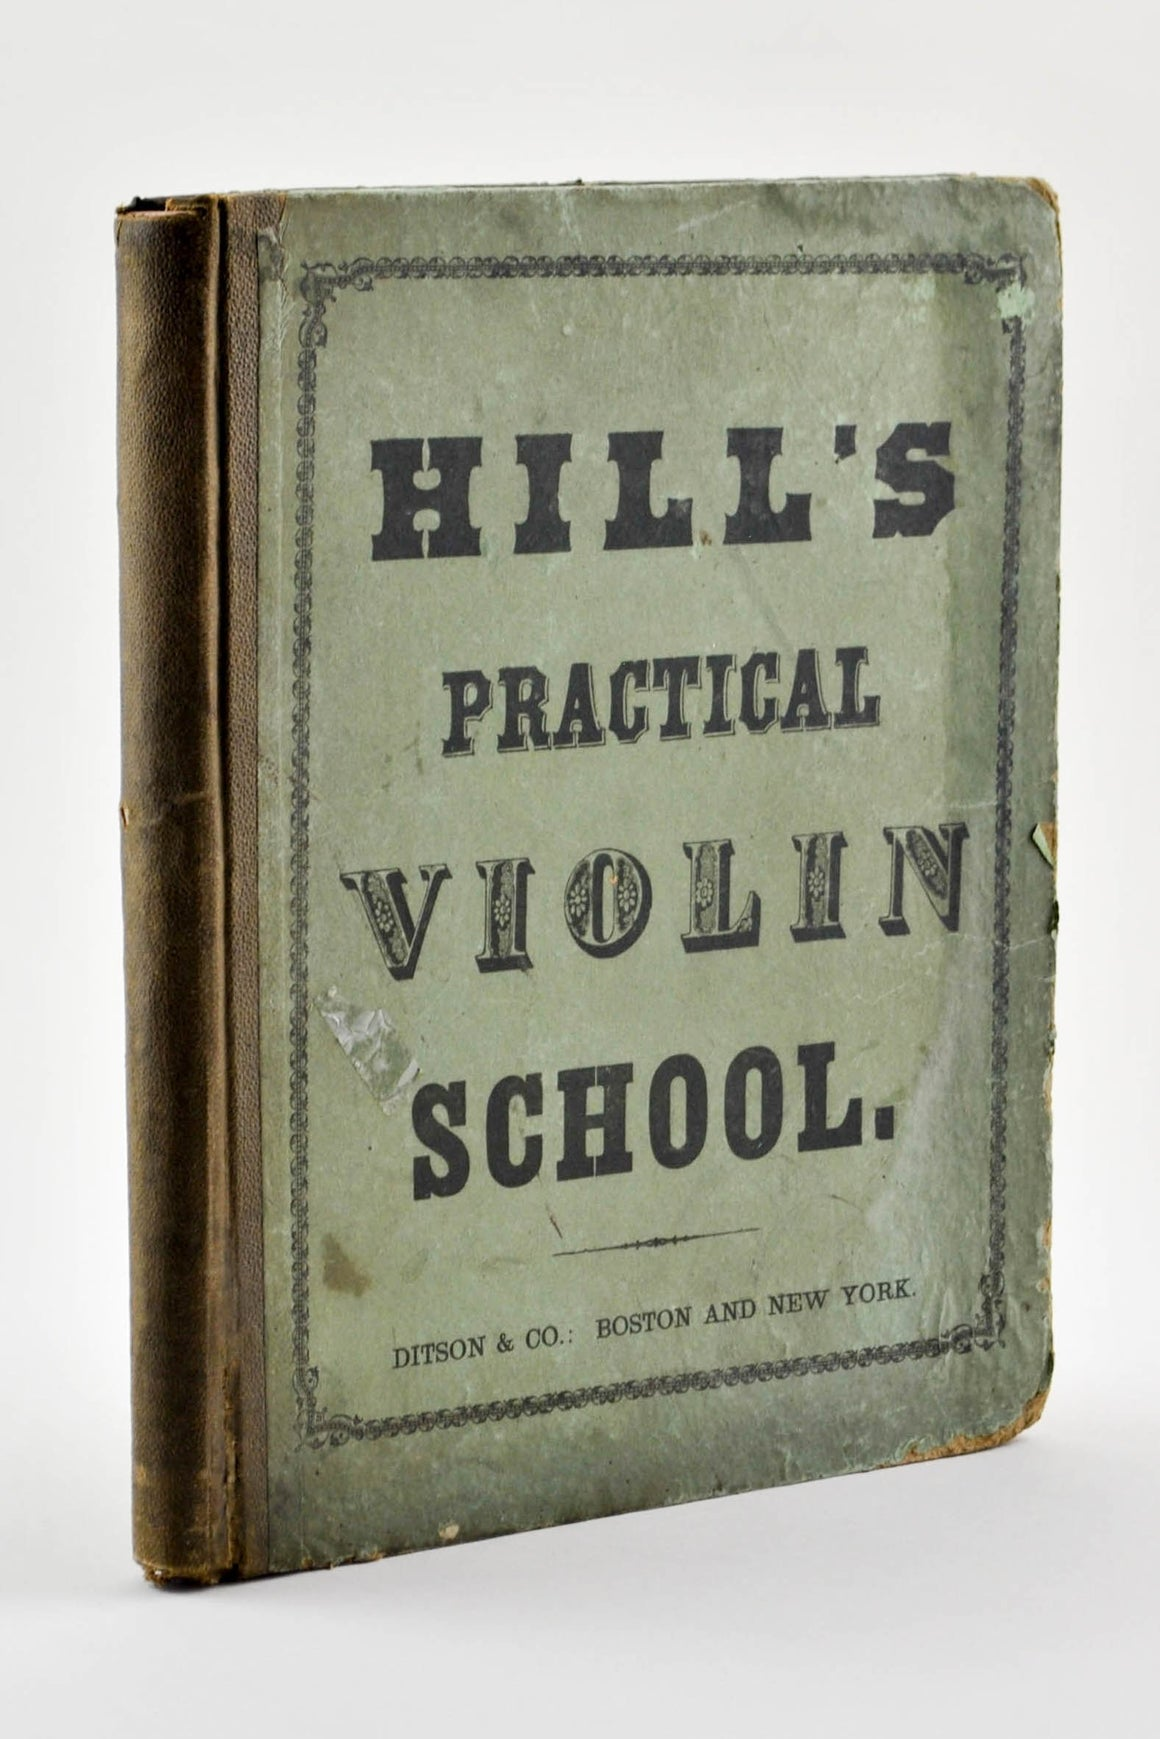 The Practical Violin School by U C Hill 1855 Signed F.O. Lang of Baltimore